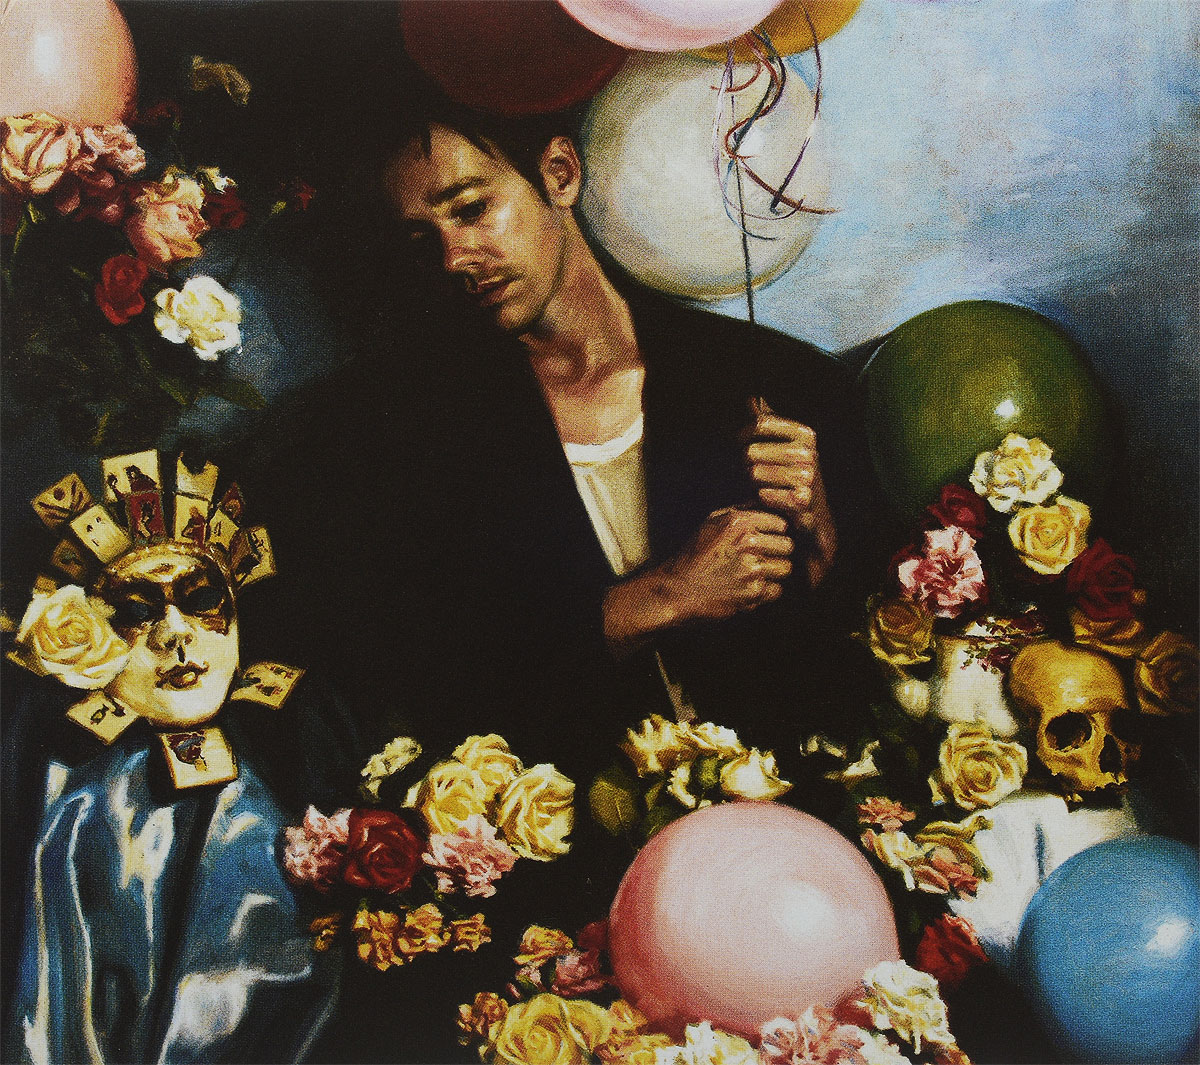 Нейт Райесс Nate Ruess. Grand Romantic big nate goes for broke